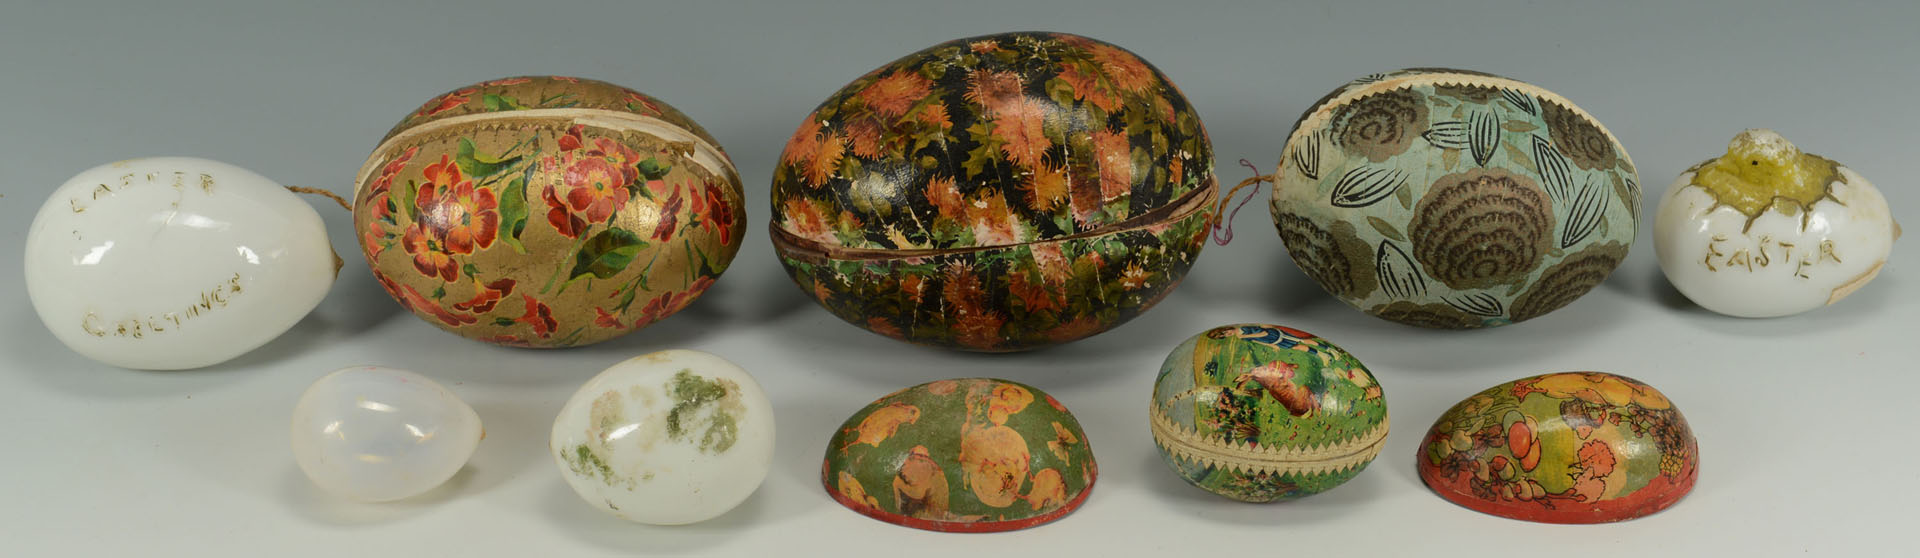 Lot 514: Grouping of Easter Containers & Decorative Items